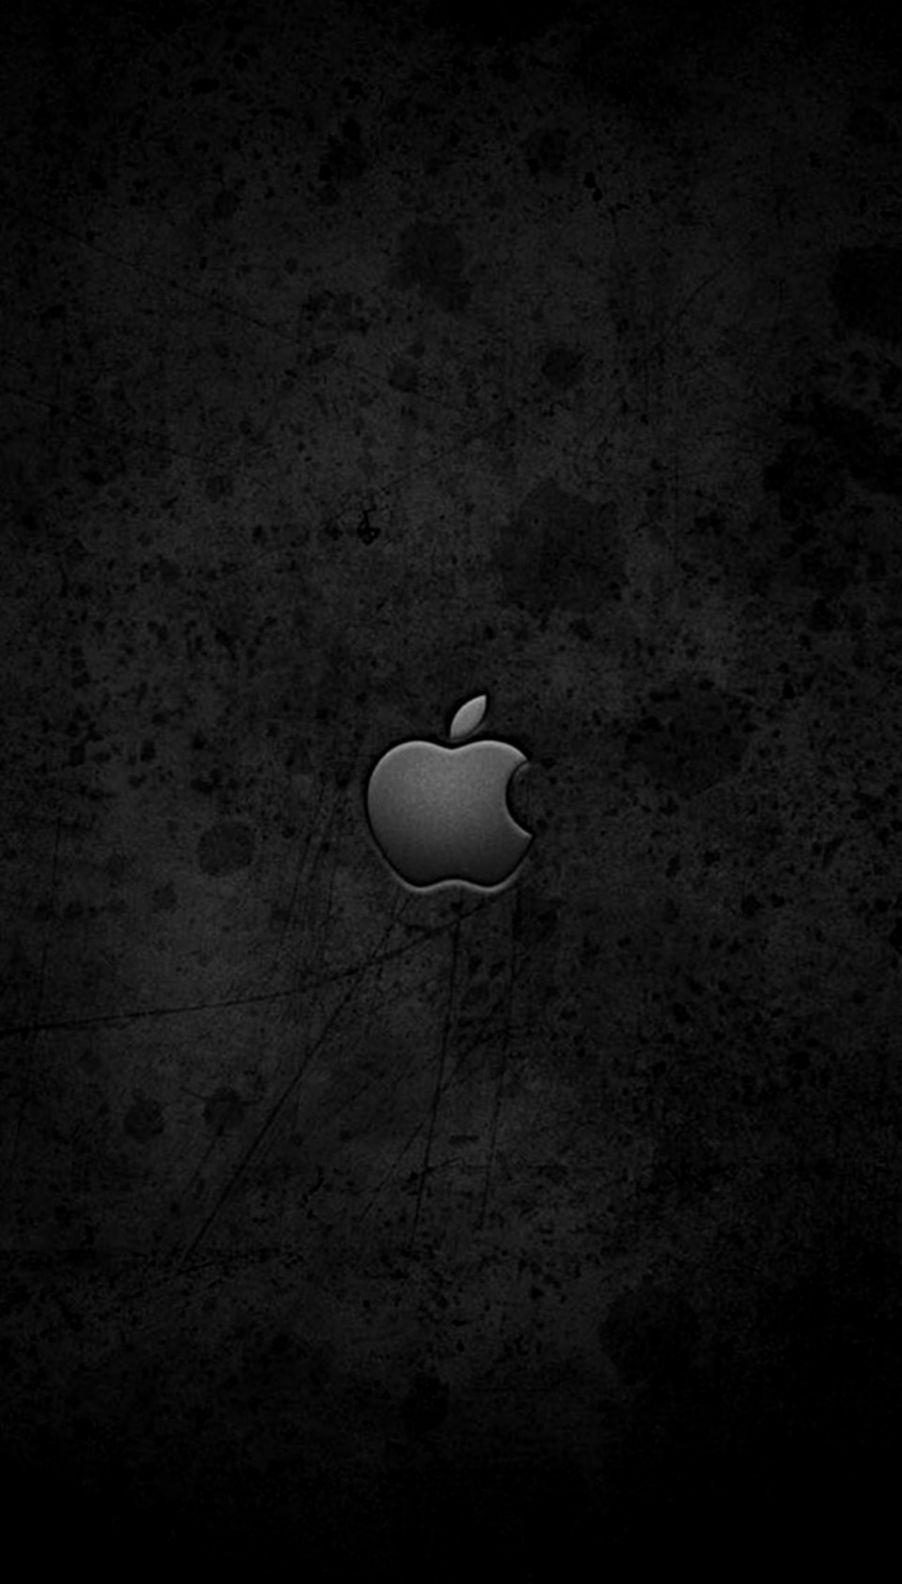 Black Apple Logo Wallpapers For Iphone 6 photos of Iphone Wallpapers